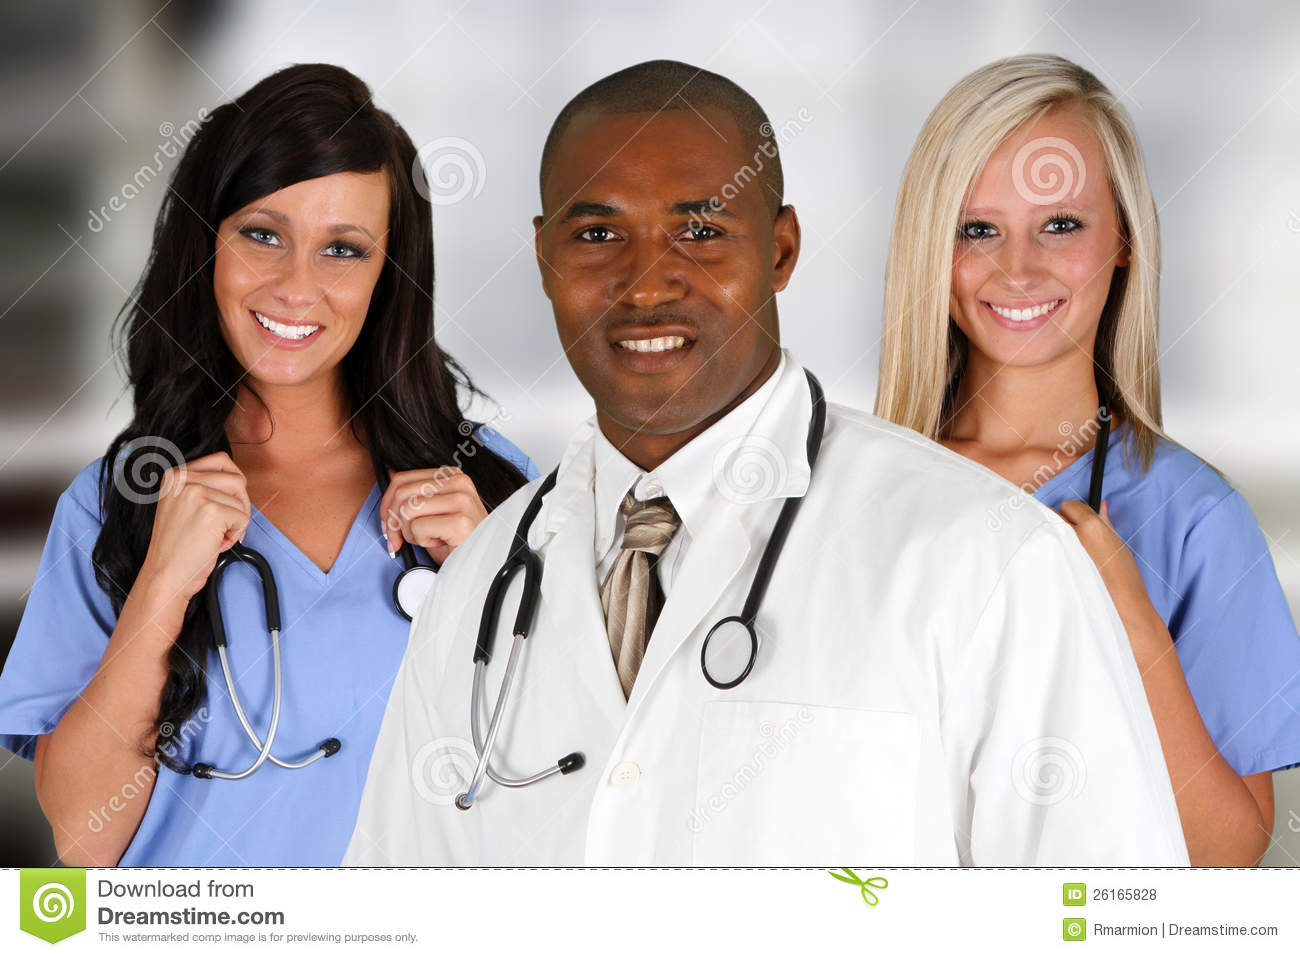 Hospital Staff Royalty Free Stock Photos - Image: 26165828